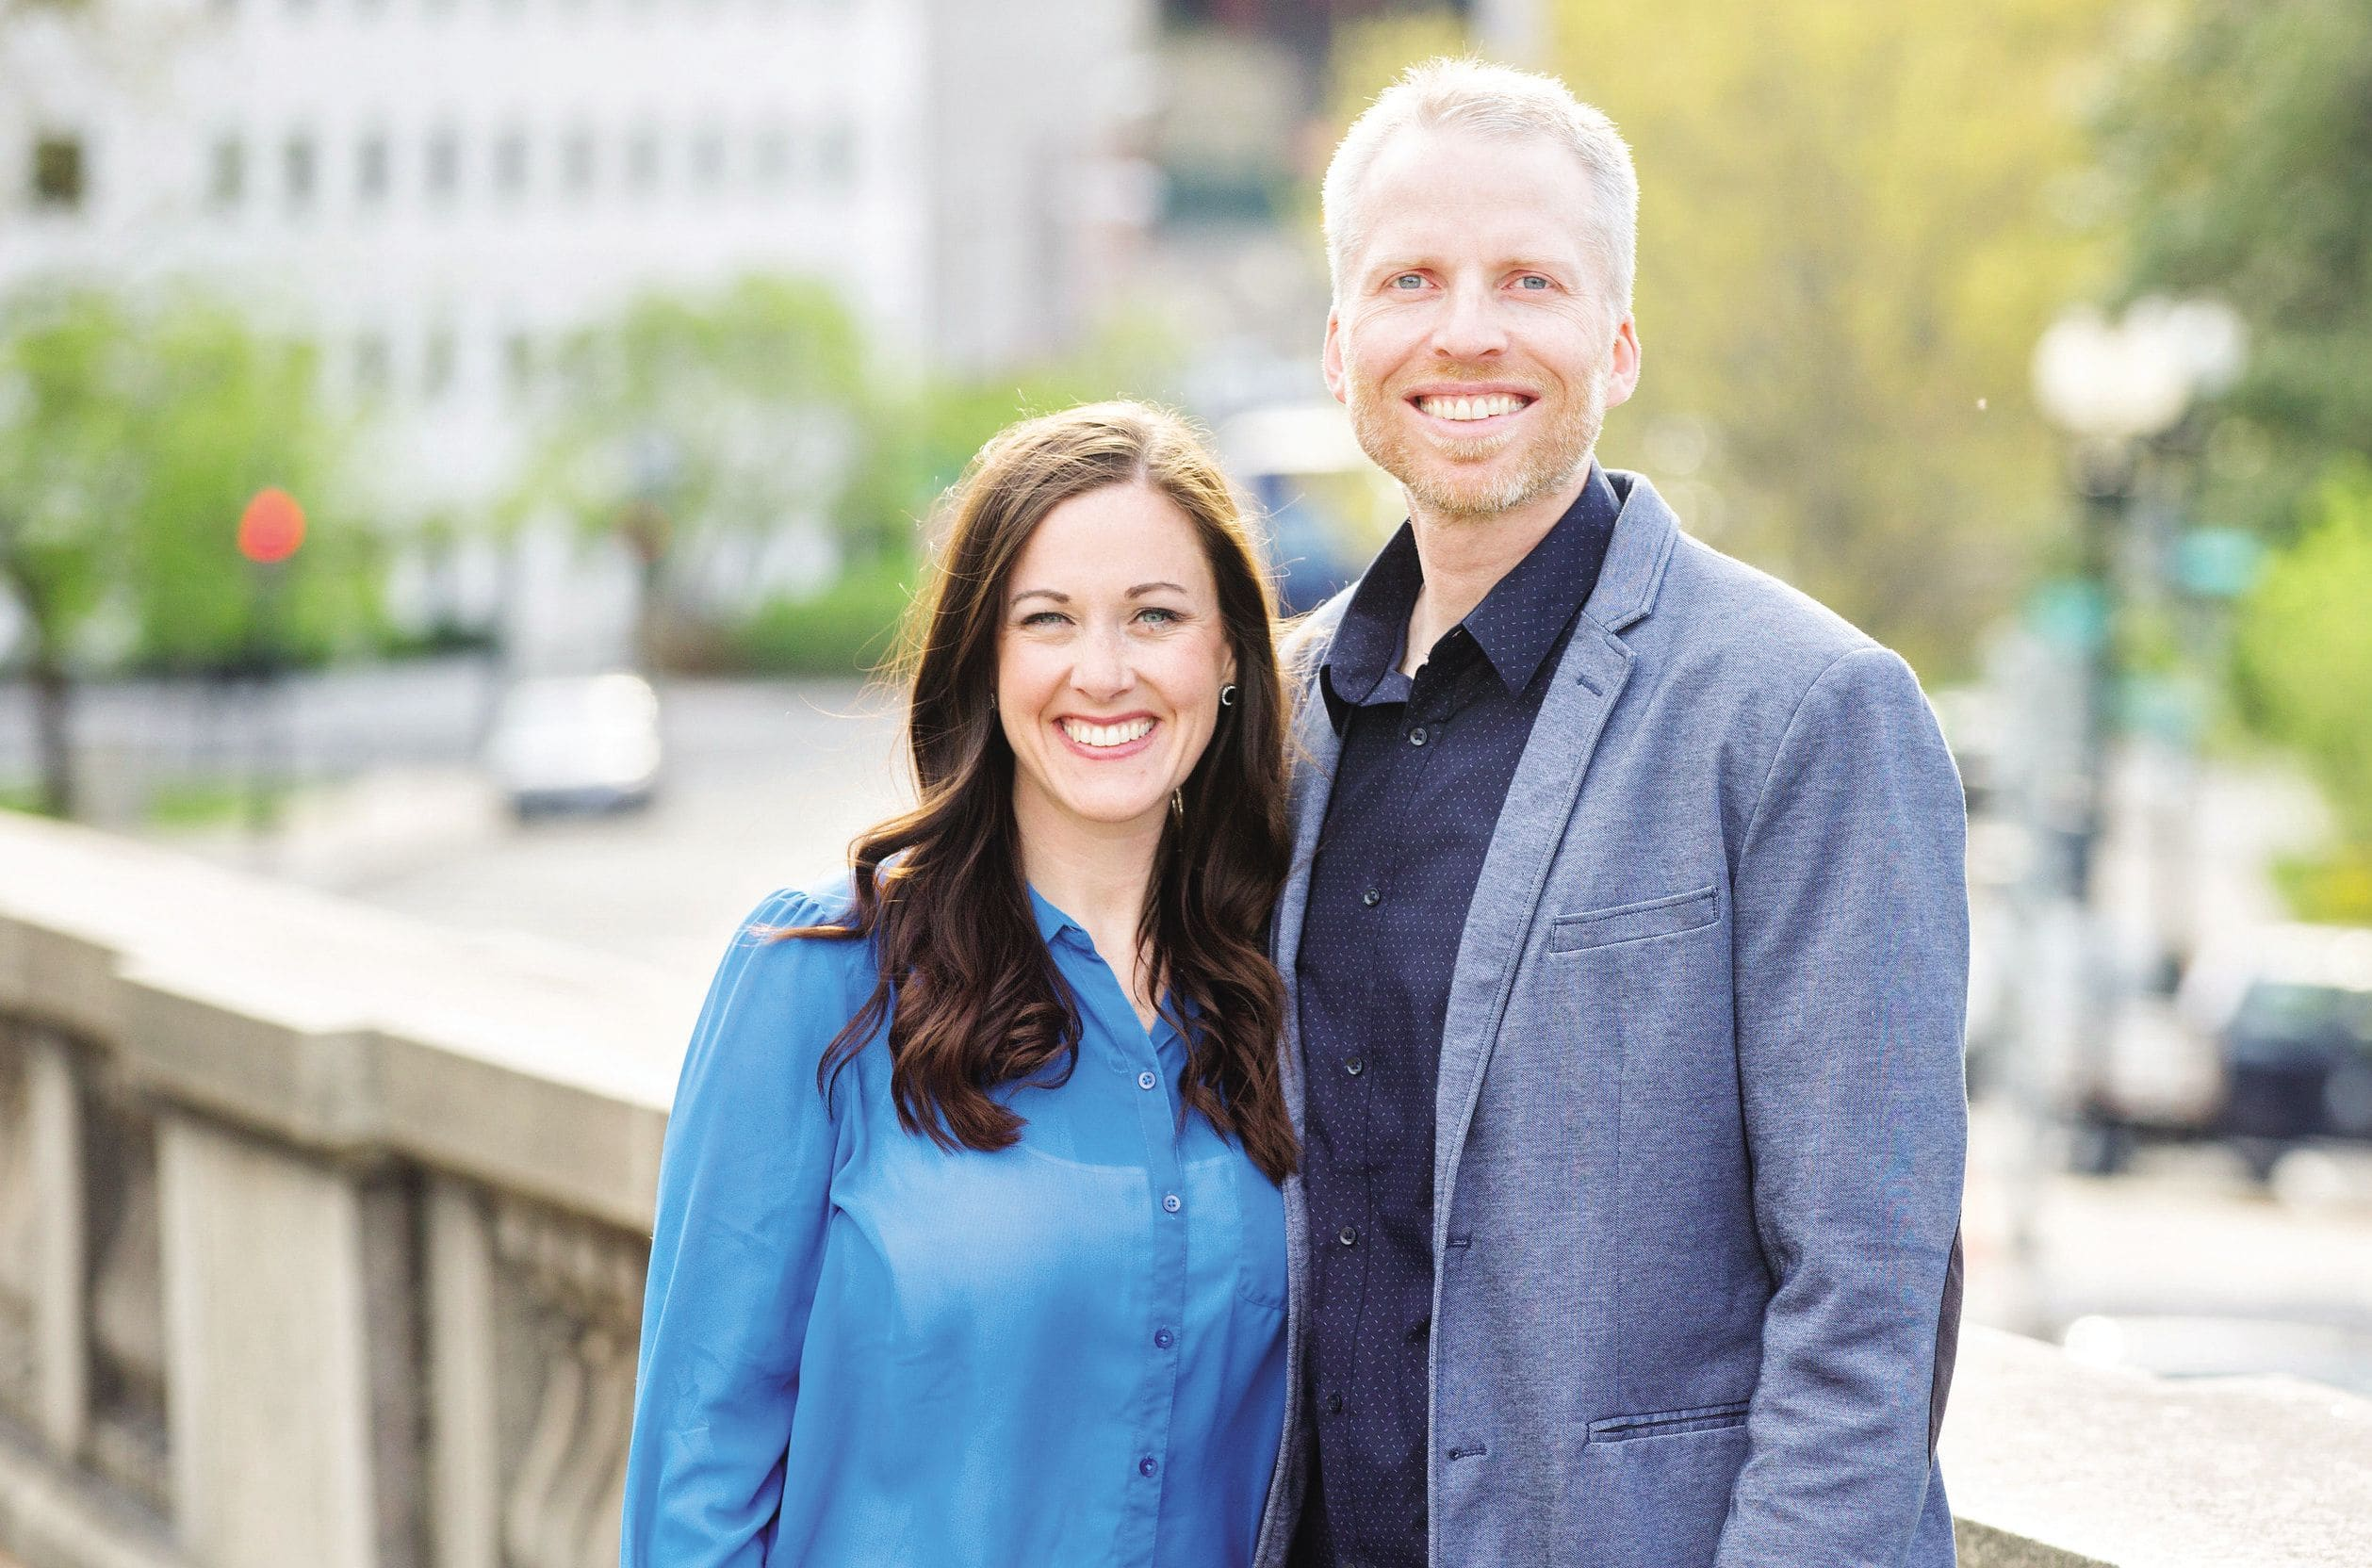 CNLP 248: Joel and Nina Schmidgall on Why Marriage is Hard and Why Praying Circles Around Your Marriage Can Change More Than You Think